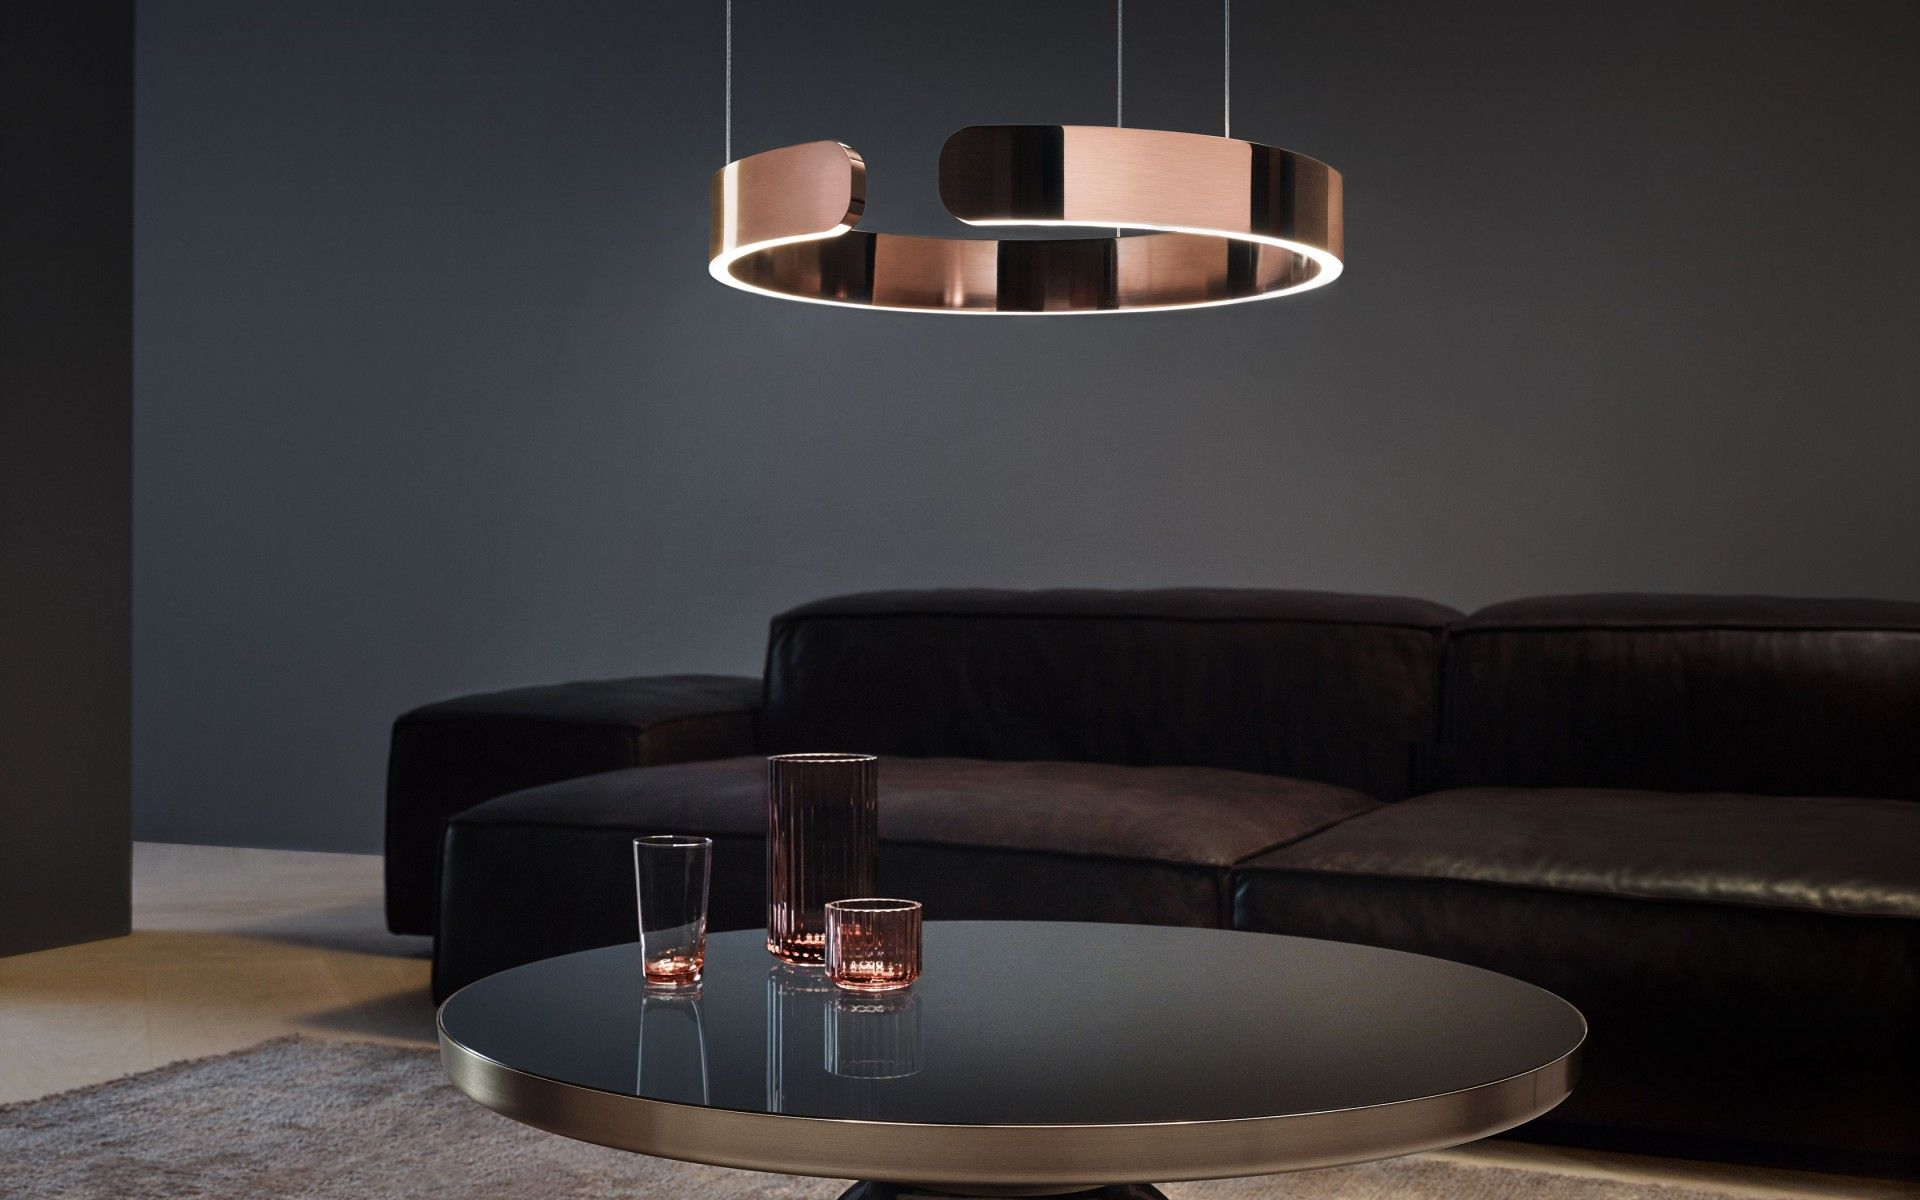 Licht Lampen Rosenheim Mito Rose Gold Lights Lighting Home Decor Und Decor